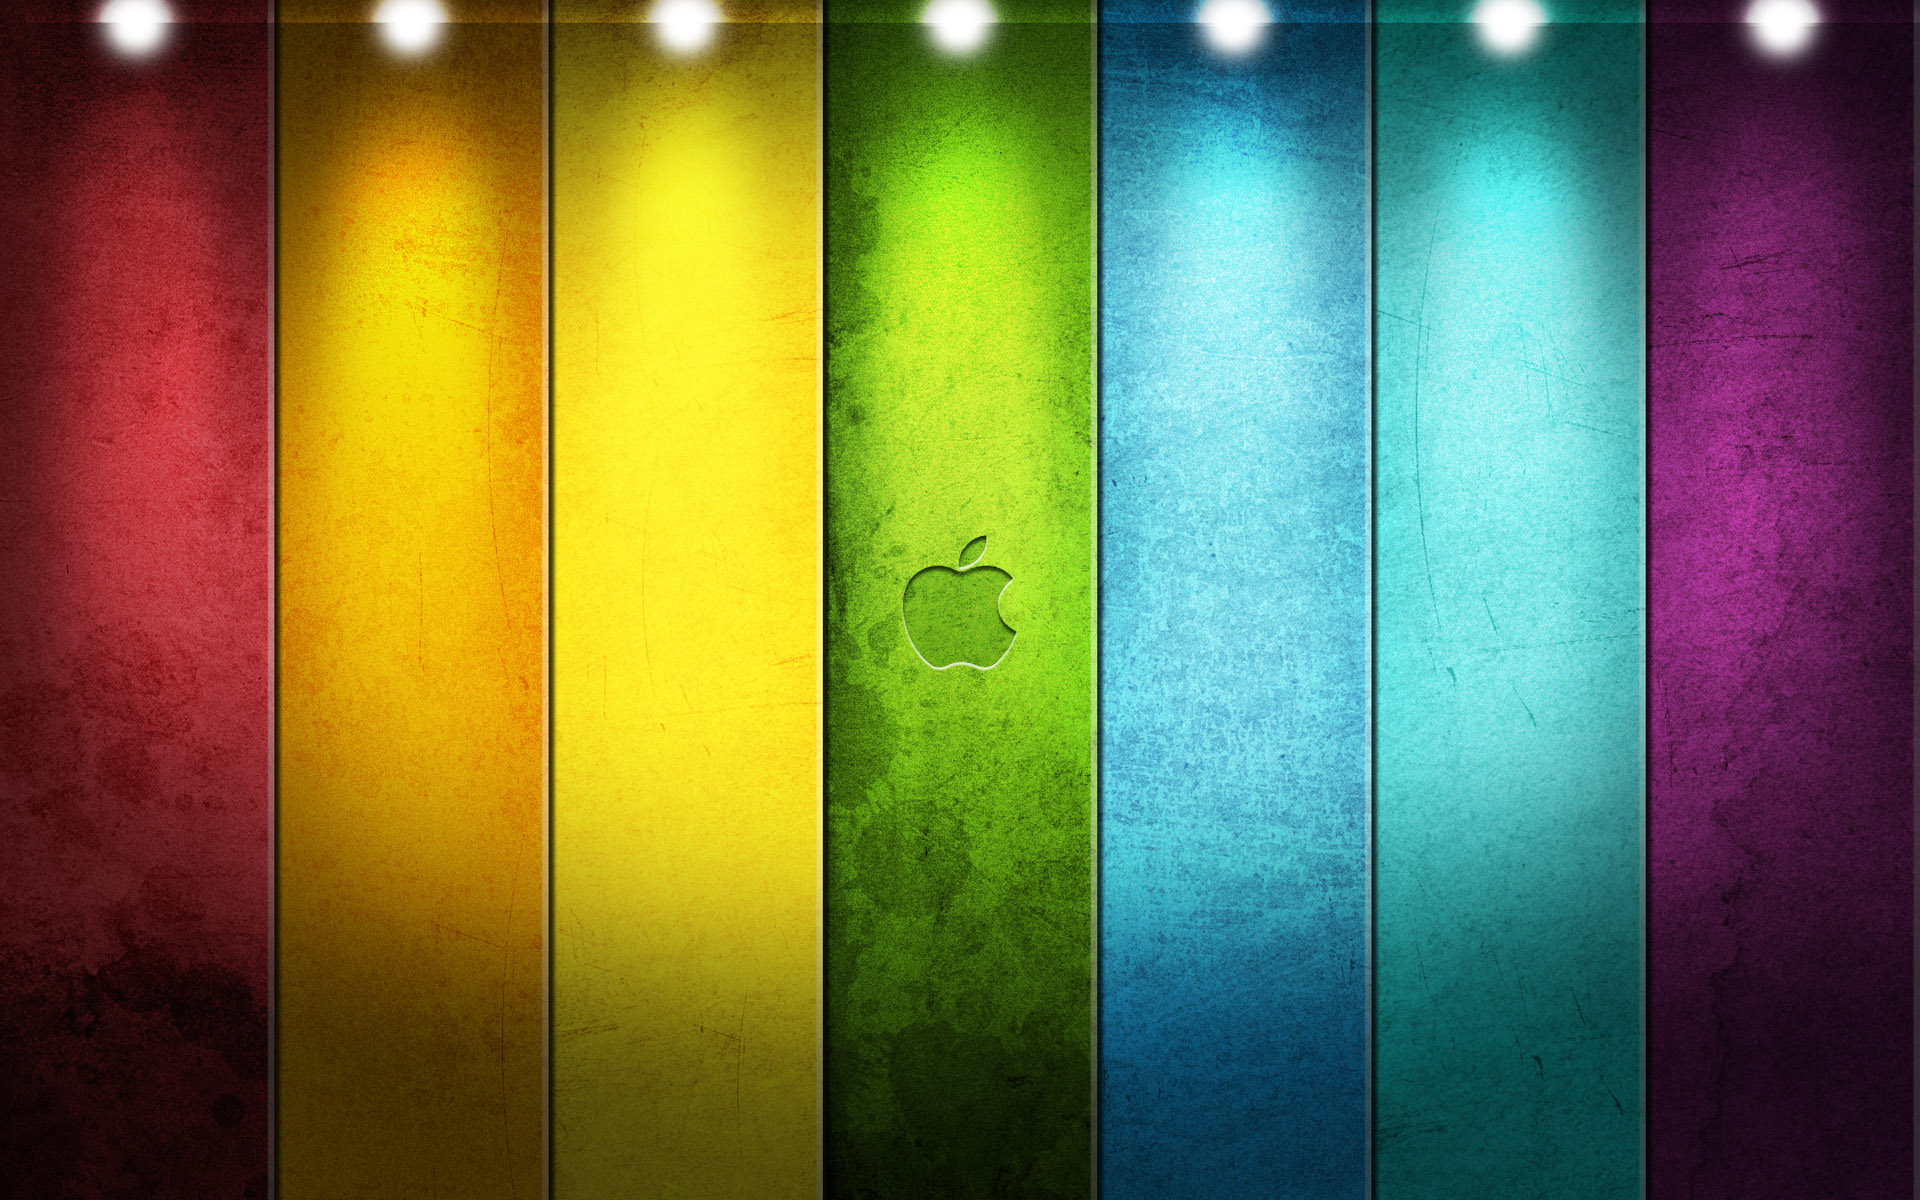 Apple_HD_Wallpapers_www.laba.ws